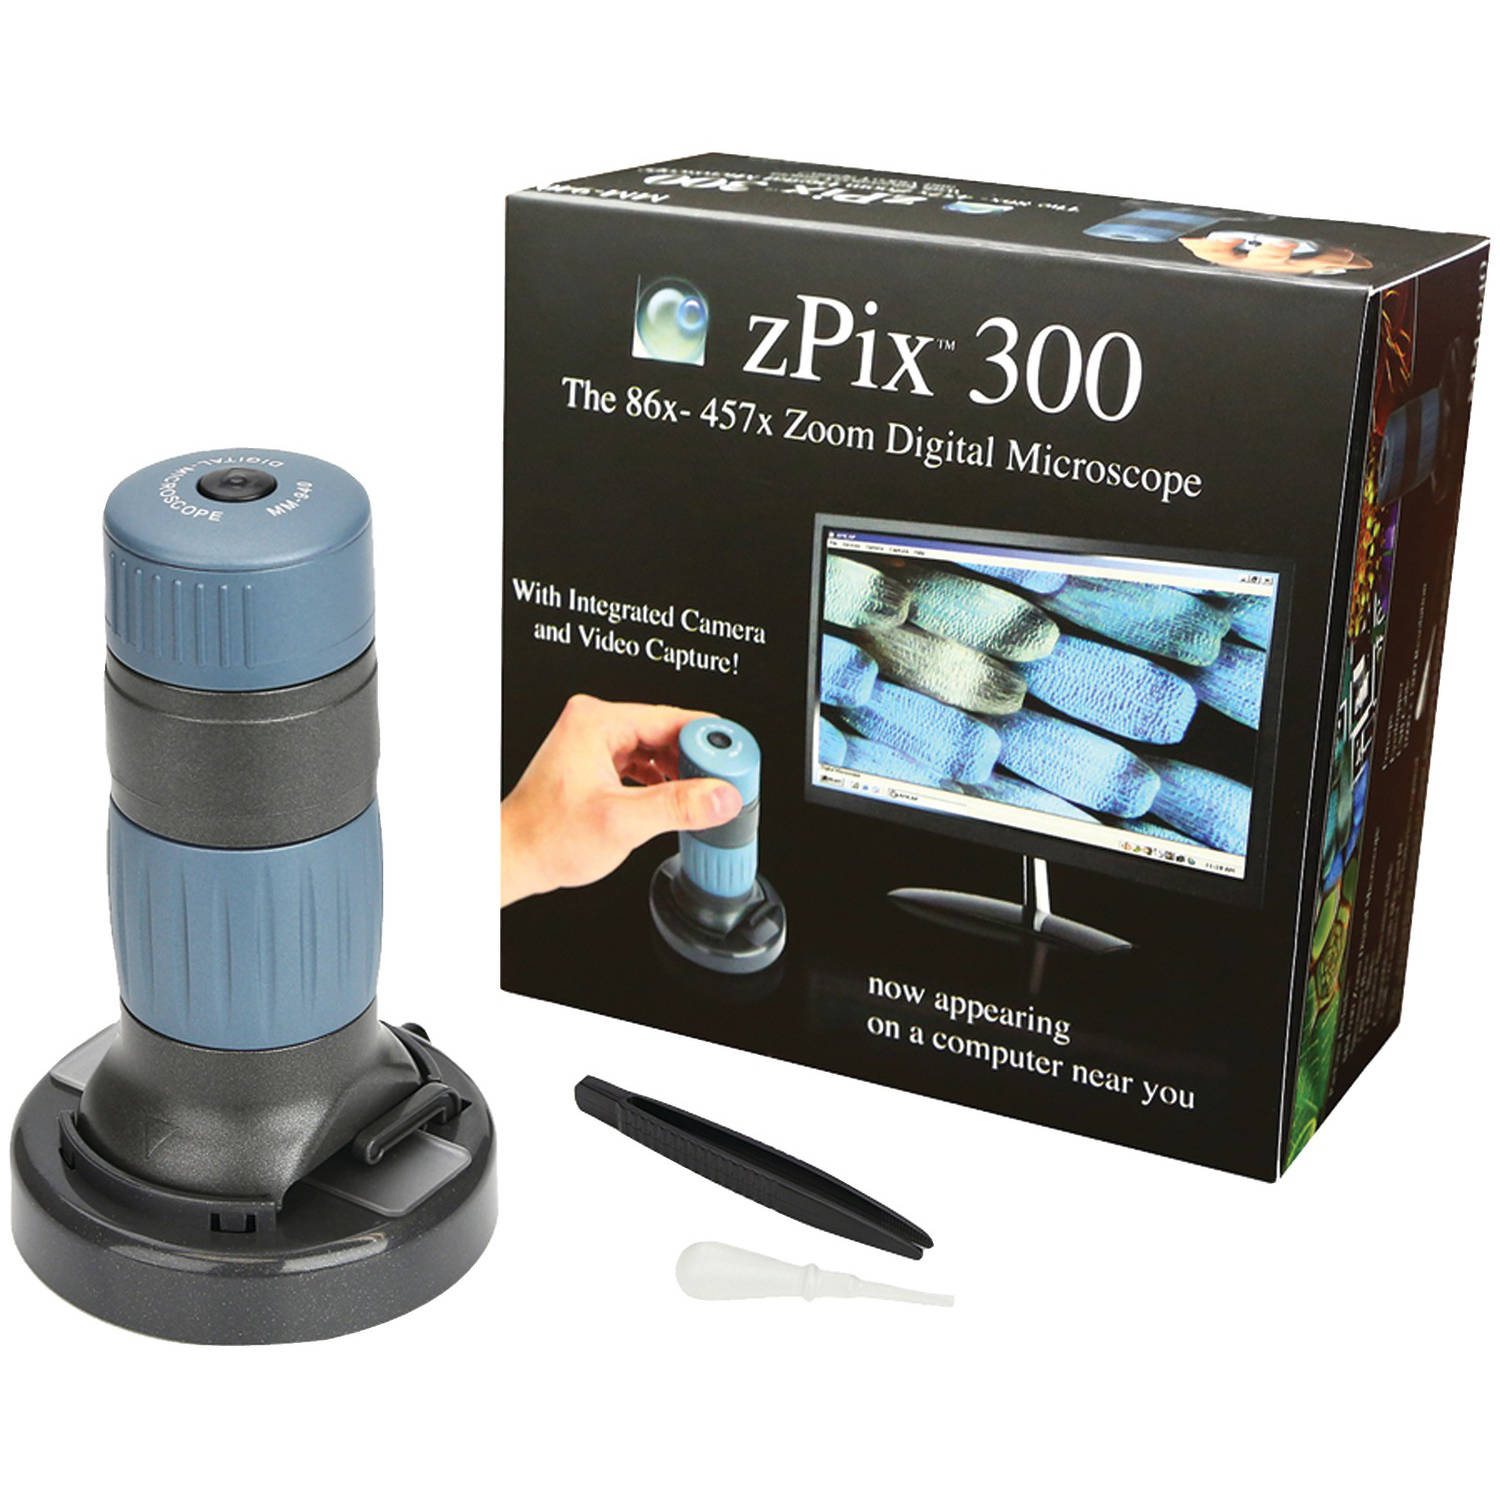 Carson Optical MM-940 zPix 300 86x-457x Digital Microscope with Integrated Camera